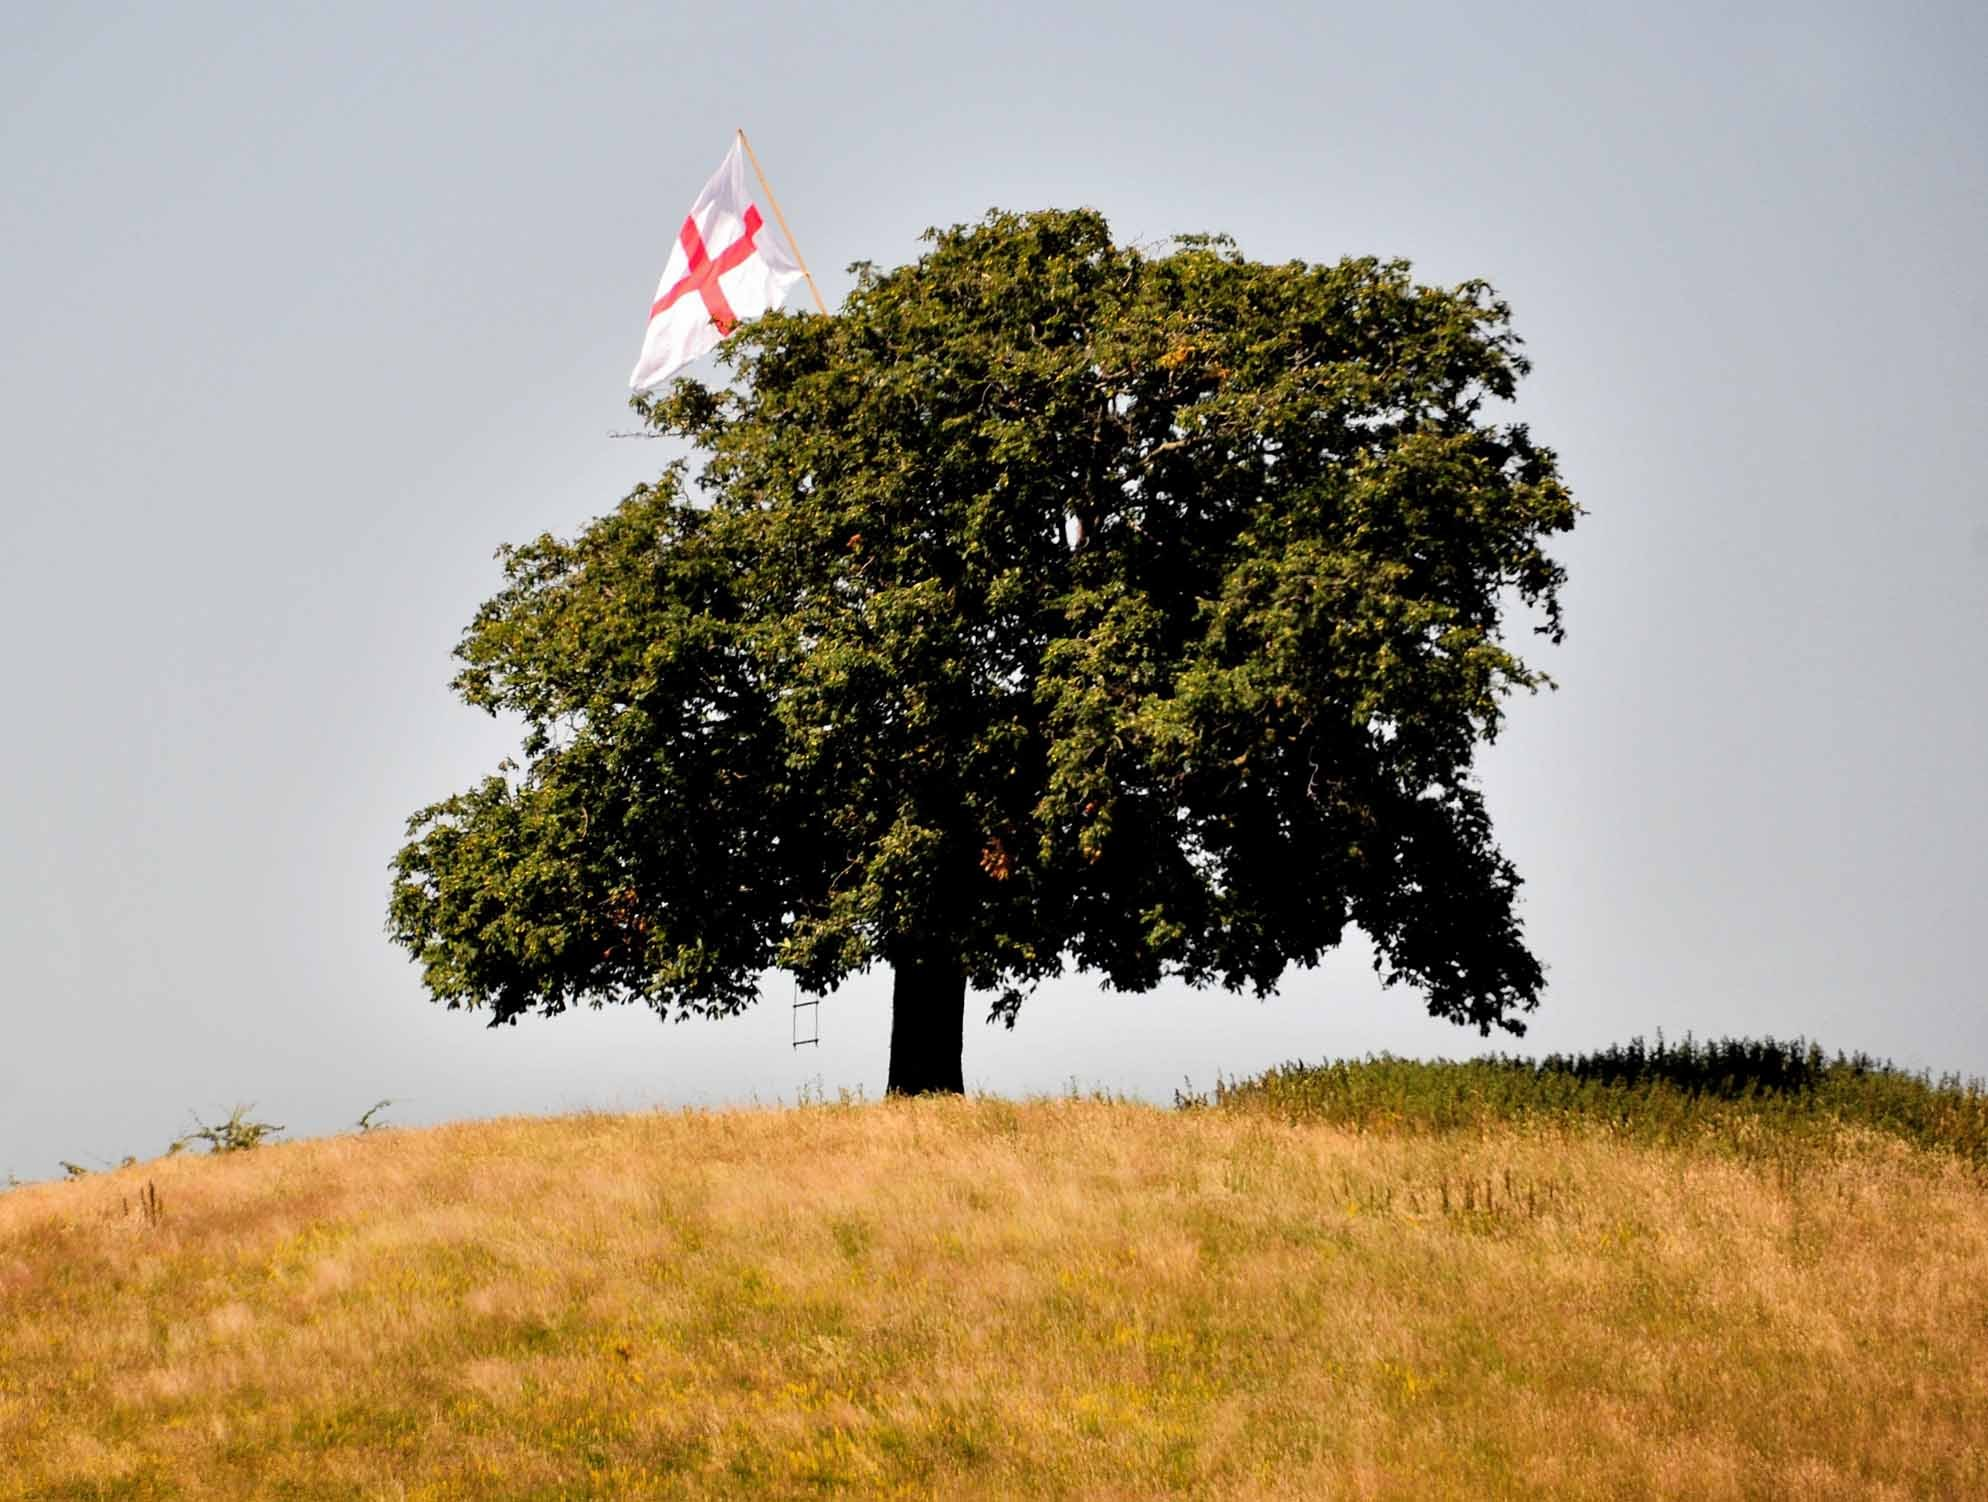 PRIDE: The flag of St George flying in the tree on the Whittington Tump. Jonathan Barry